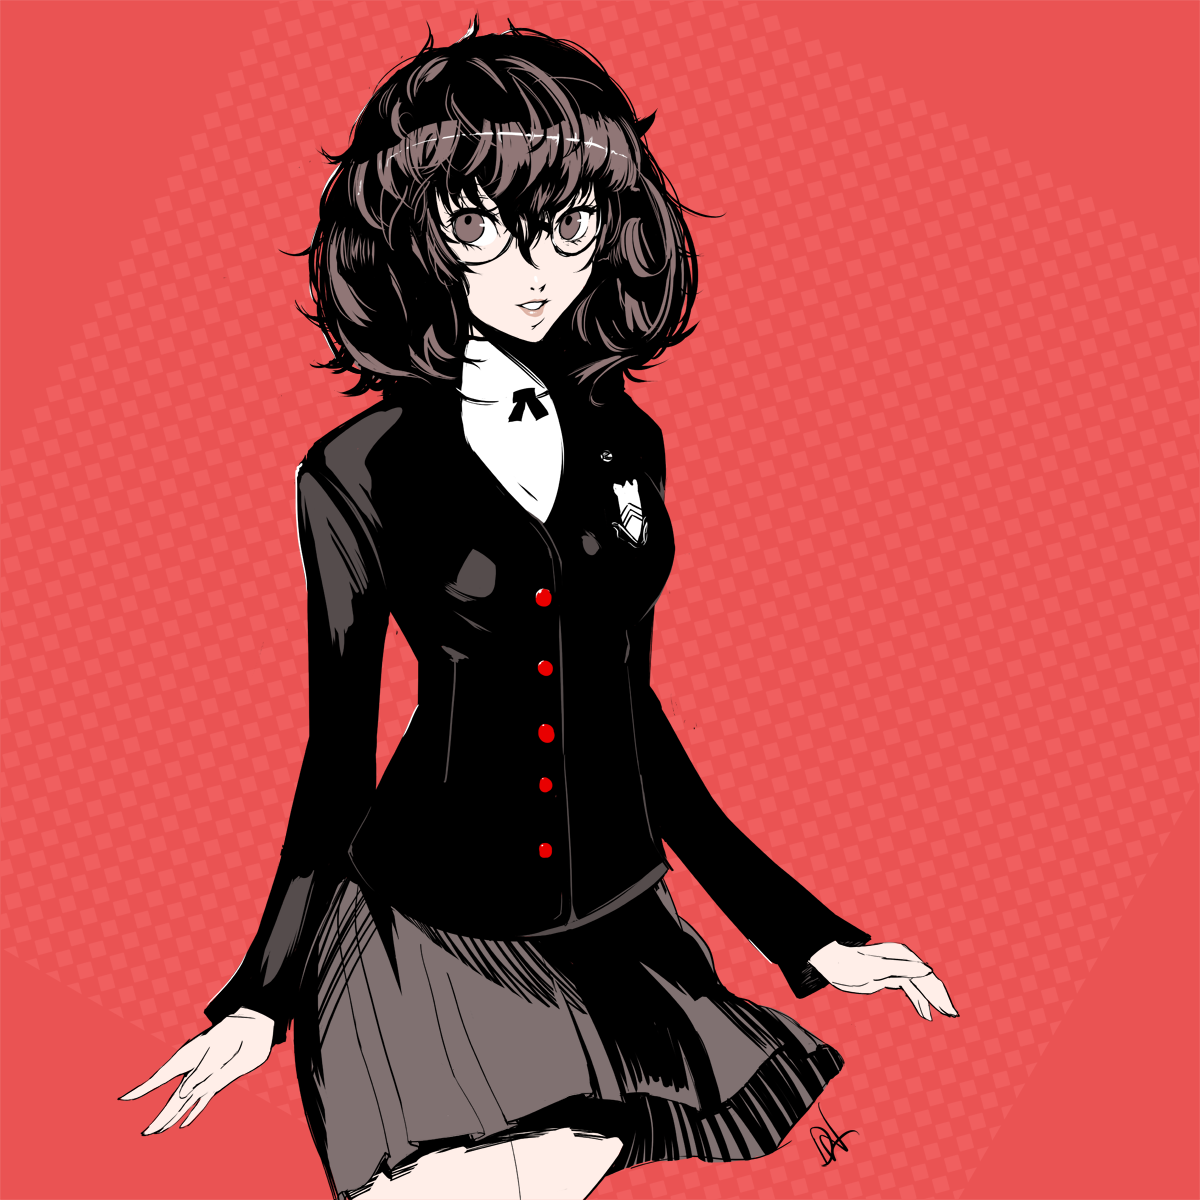 brinkofmemories: A female version of Joker from Persona 8!#WoOF